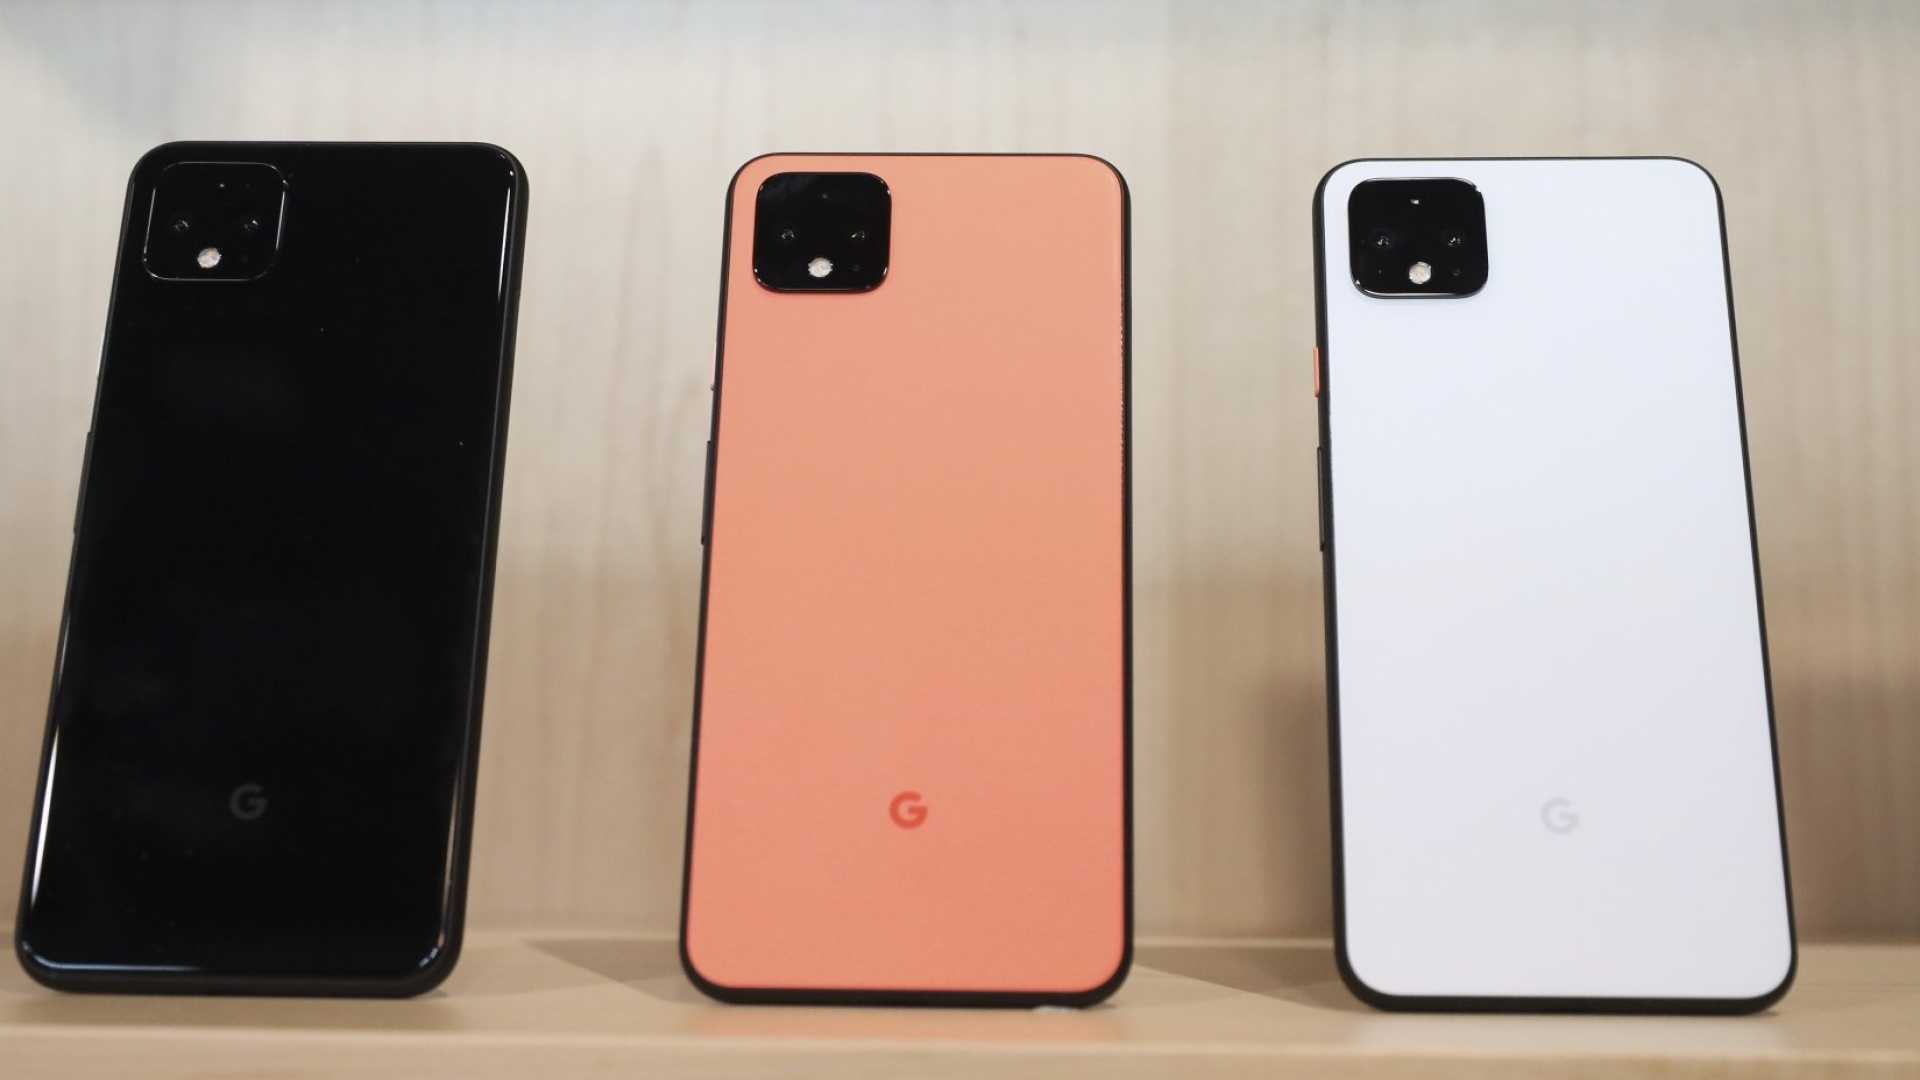 Google's Pixel 4 Announcement Was the Least Exciting Phone Launch Ever. Here's Why That's Actually Google's Best Move